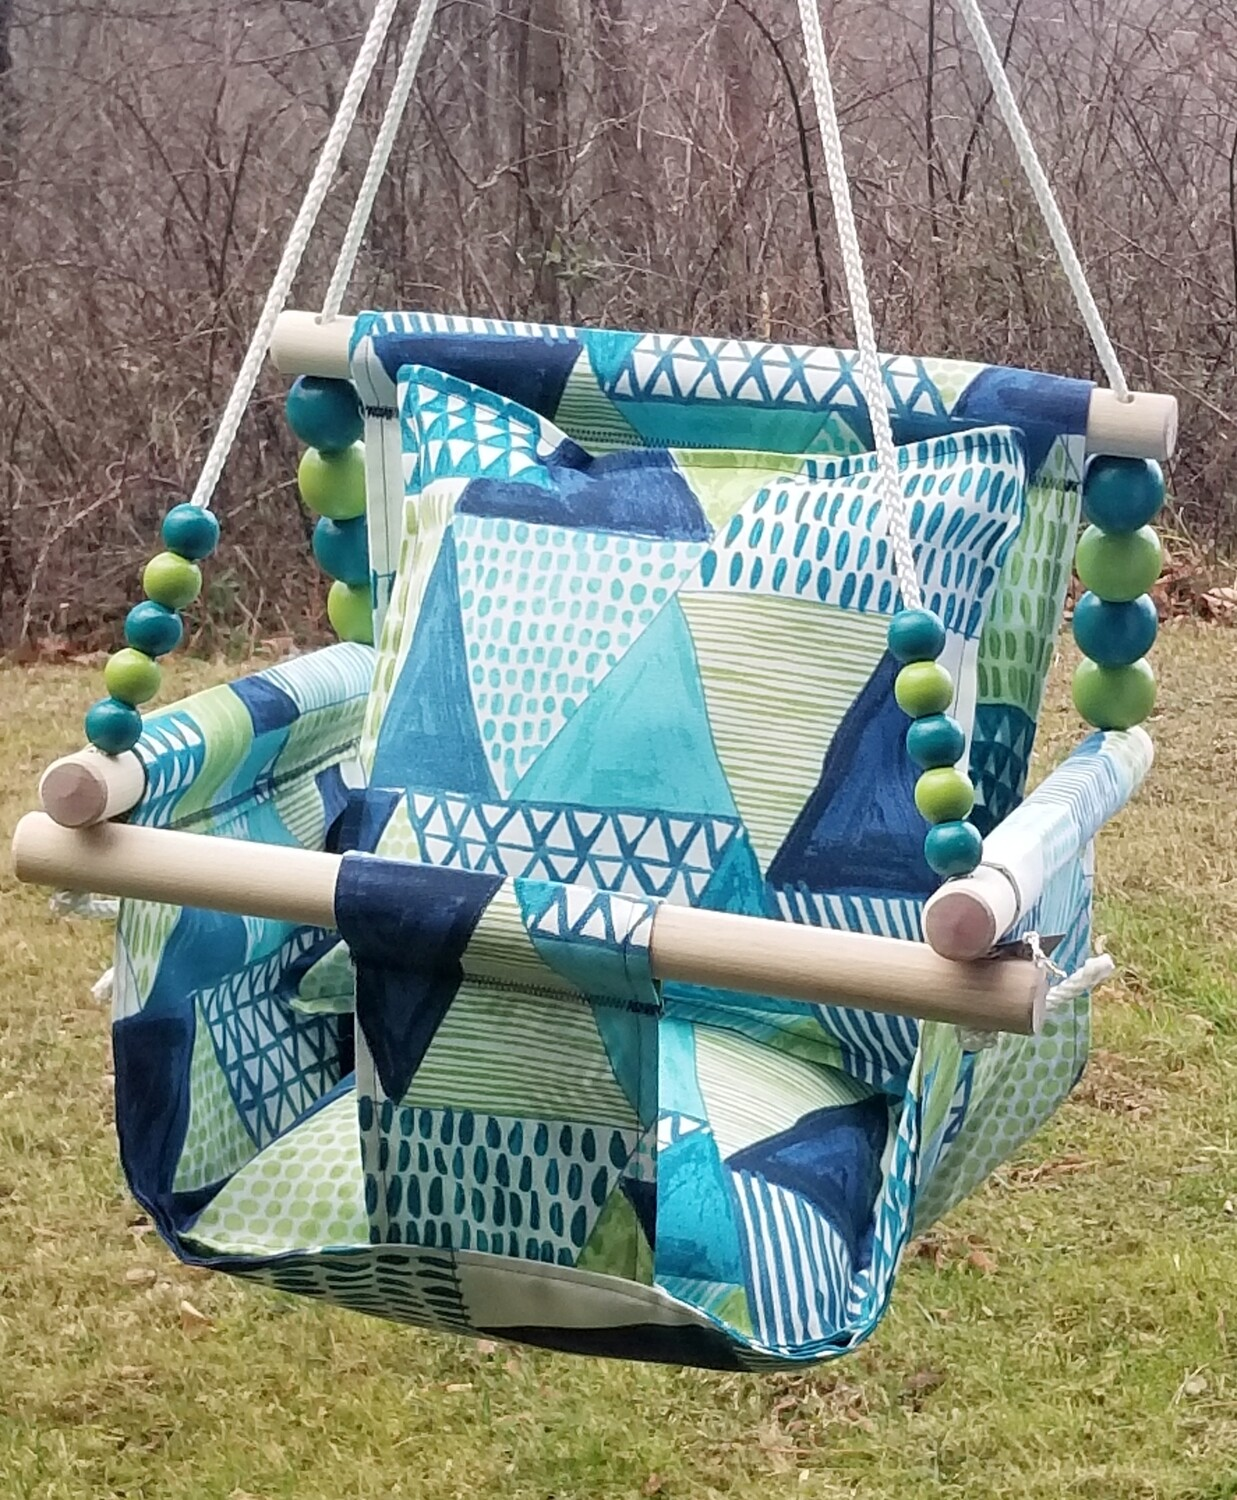 NEW Water-Resistant Baby/Toddler Swing, Indoor/Outdoor Swing, Wooden Baby Swing, Handmade Fabric Baby Swing, Baby Gift, BEST SELLER